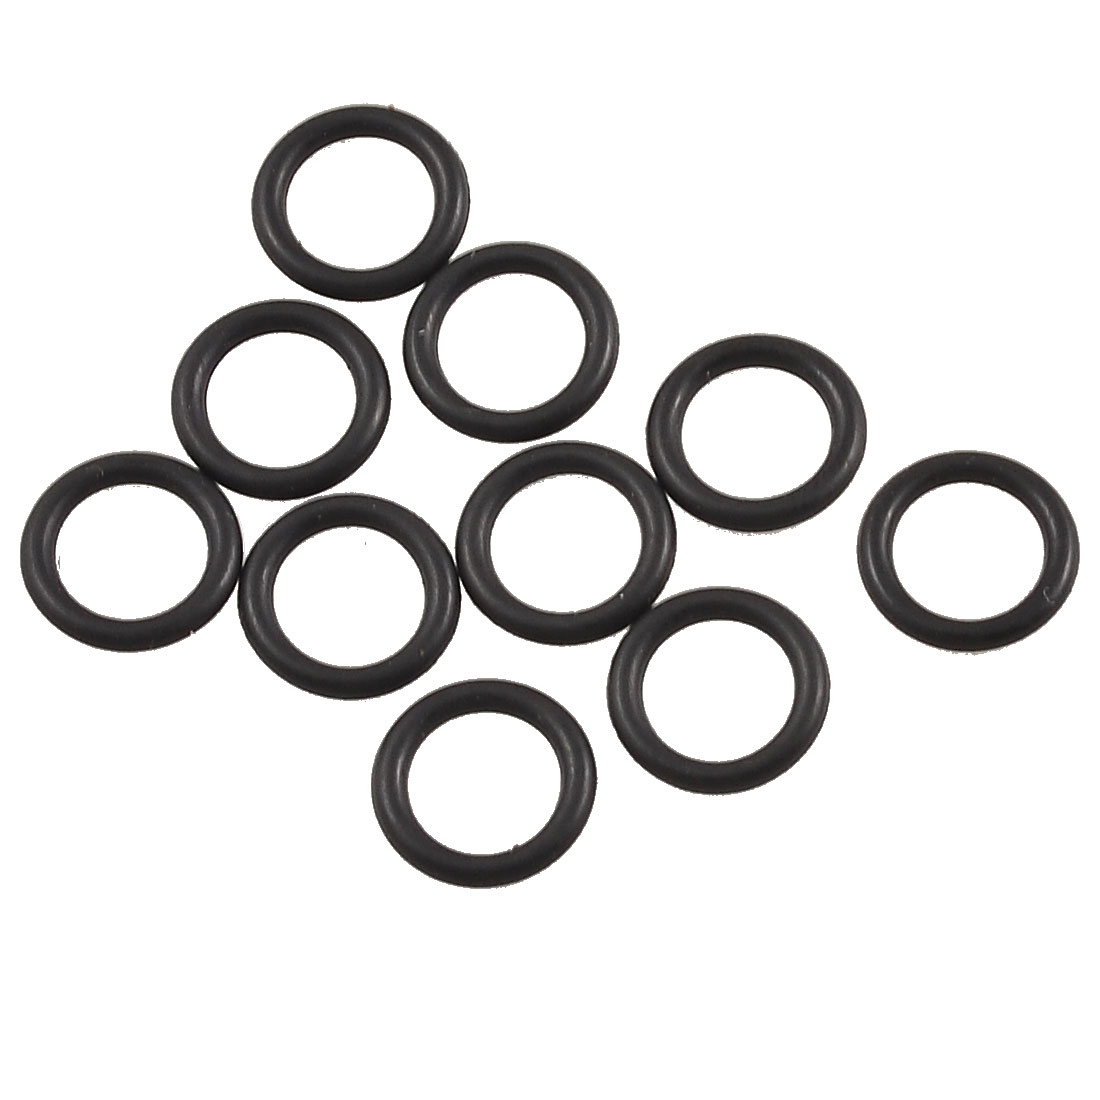 10 Pcs Black Rubber Oil Filter Seal O Ring Gaskets 8mm x 5mm x 1.5mm